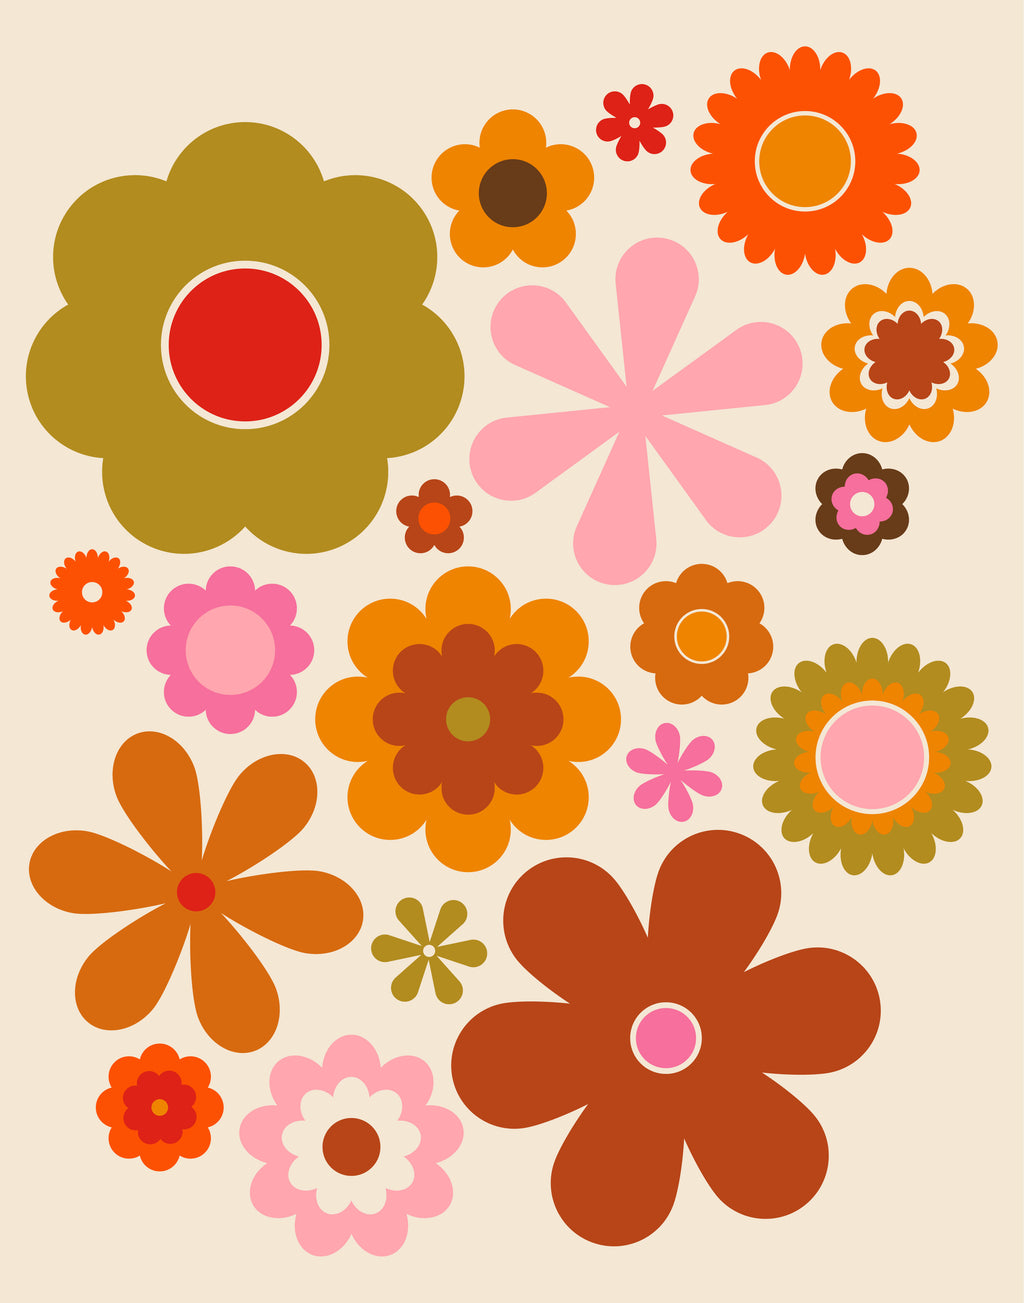 FREE DOWNLOAD: Retro Floral